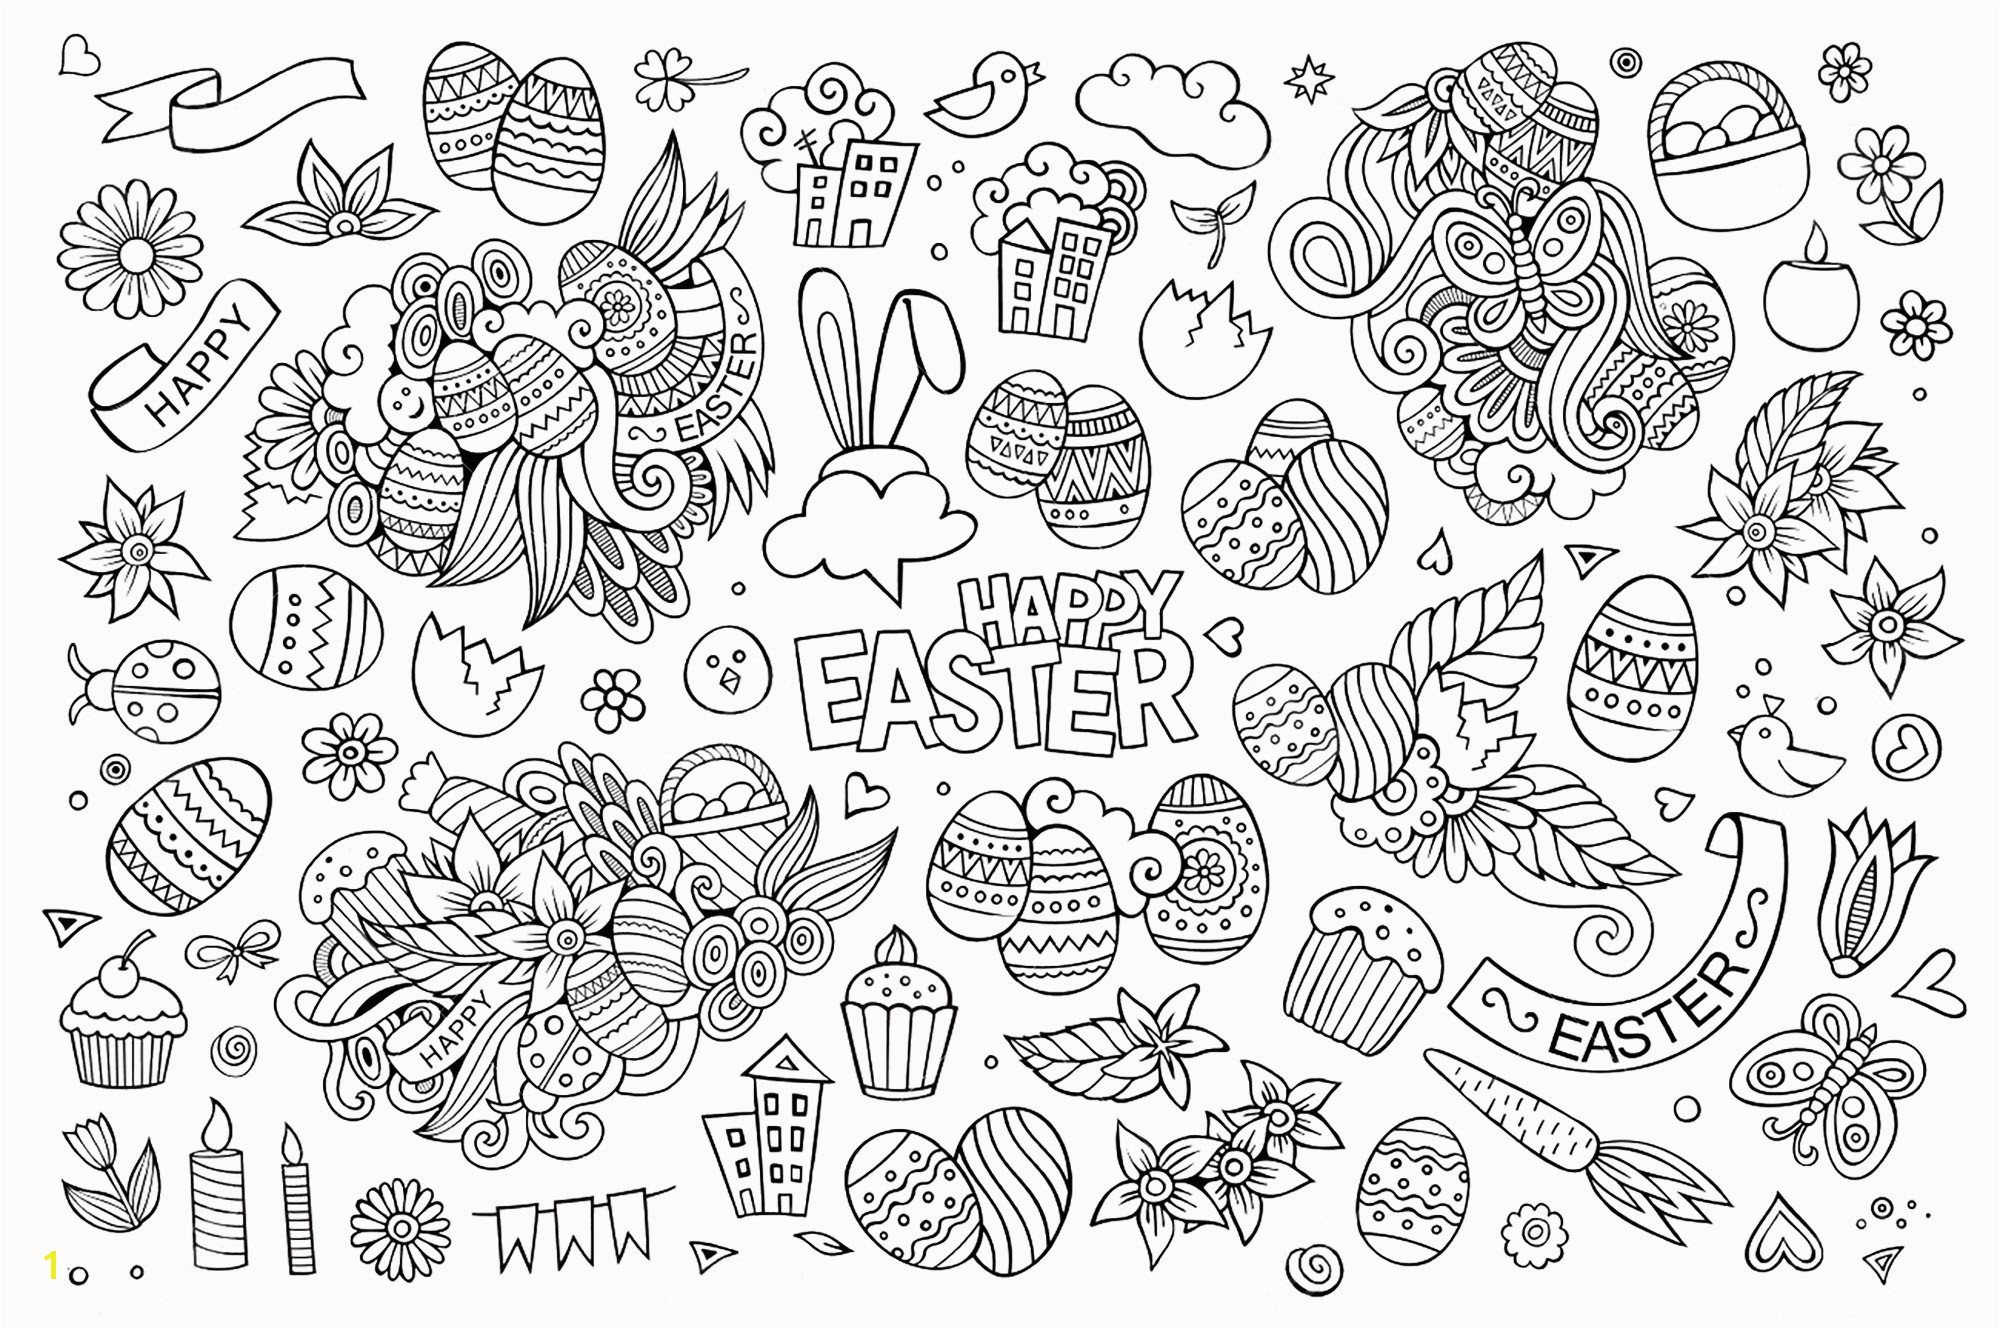 Symbols Of the Usa Coloring Pages Symbols the Usa Coloring Pages New Simple Easter Doodle Easter